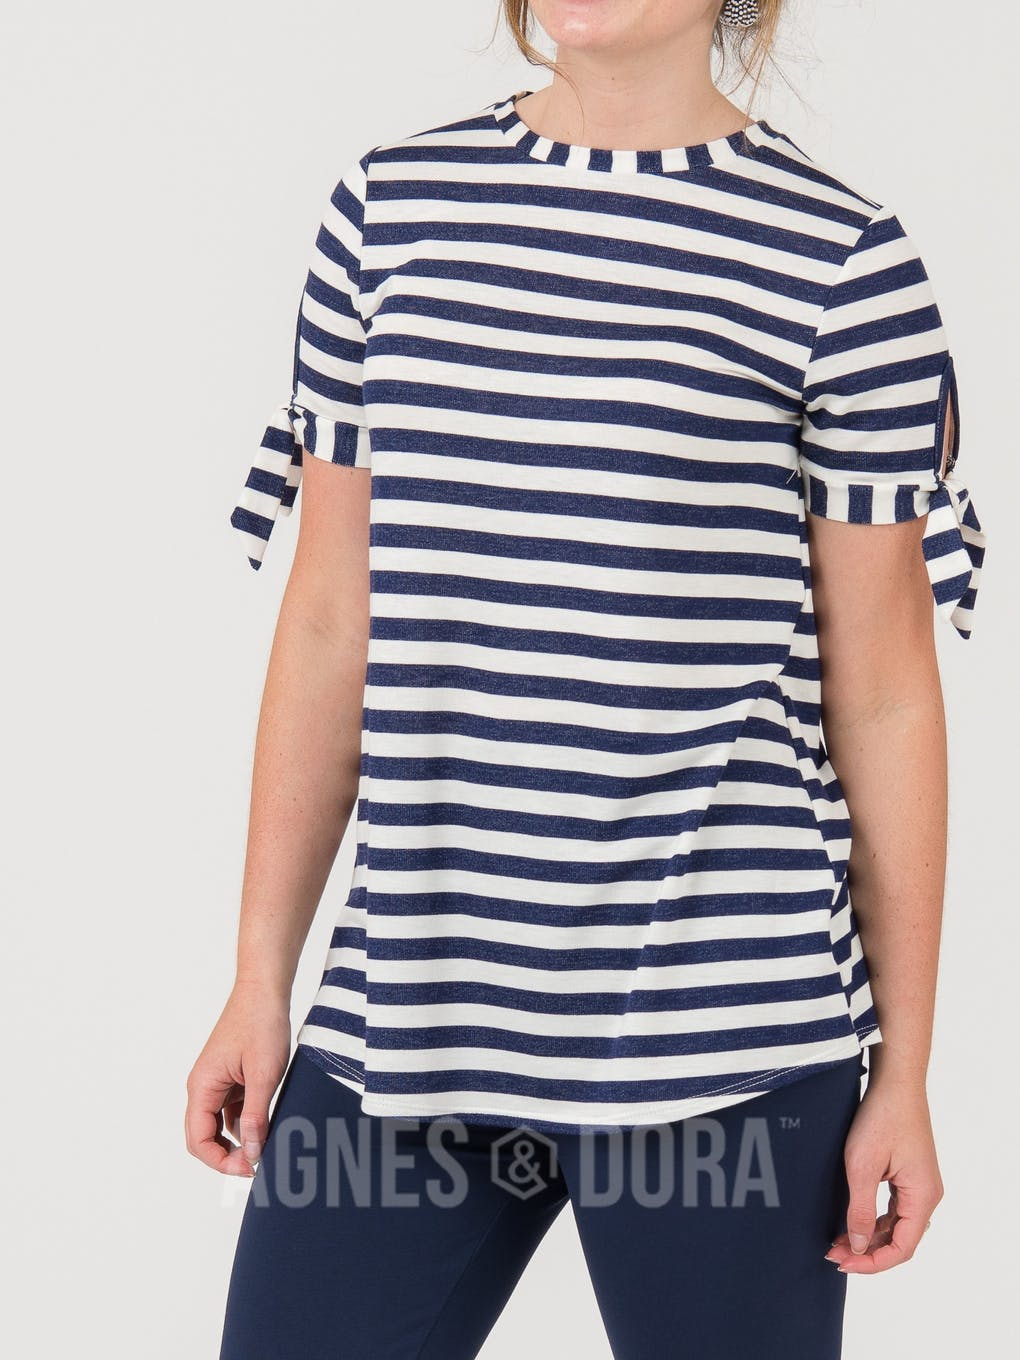 Agnes & Dora™ Tie Sleeve Top Ivory Navy Stripe